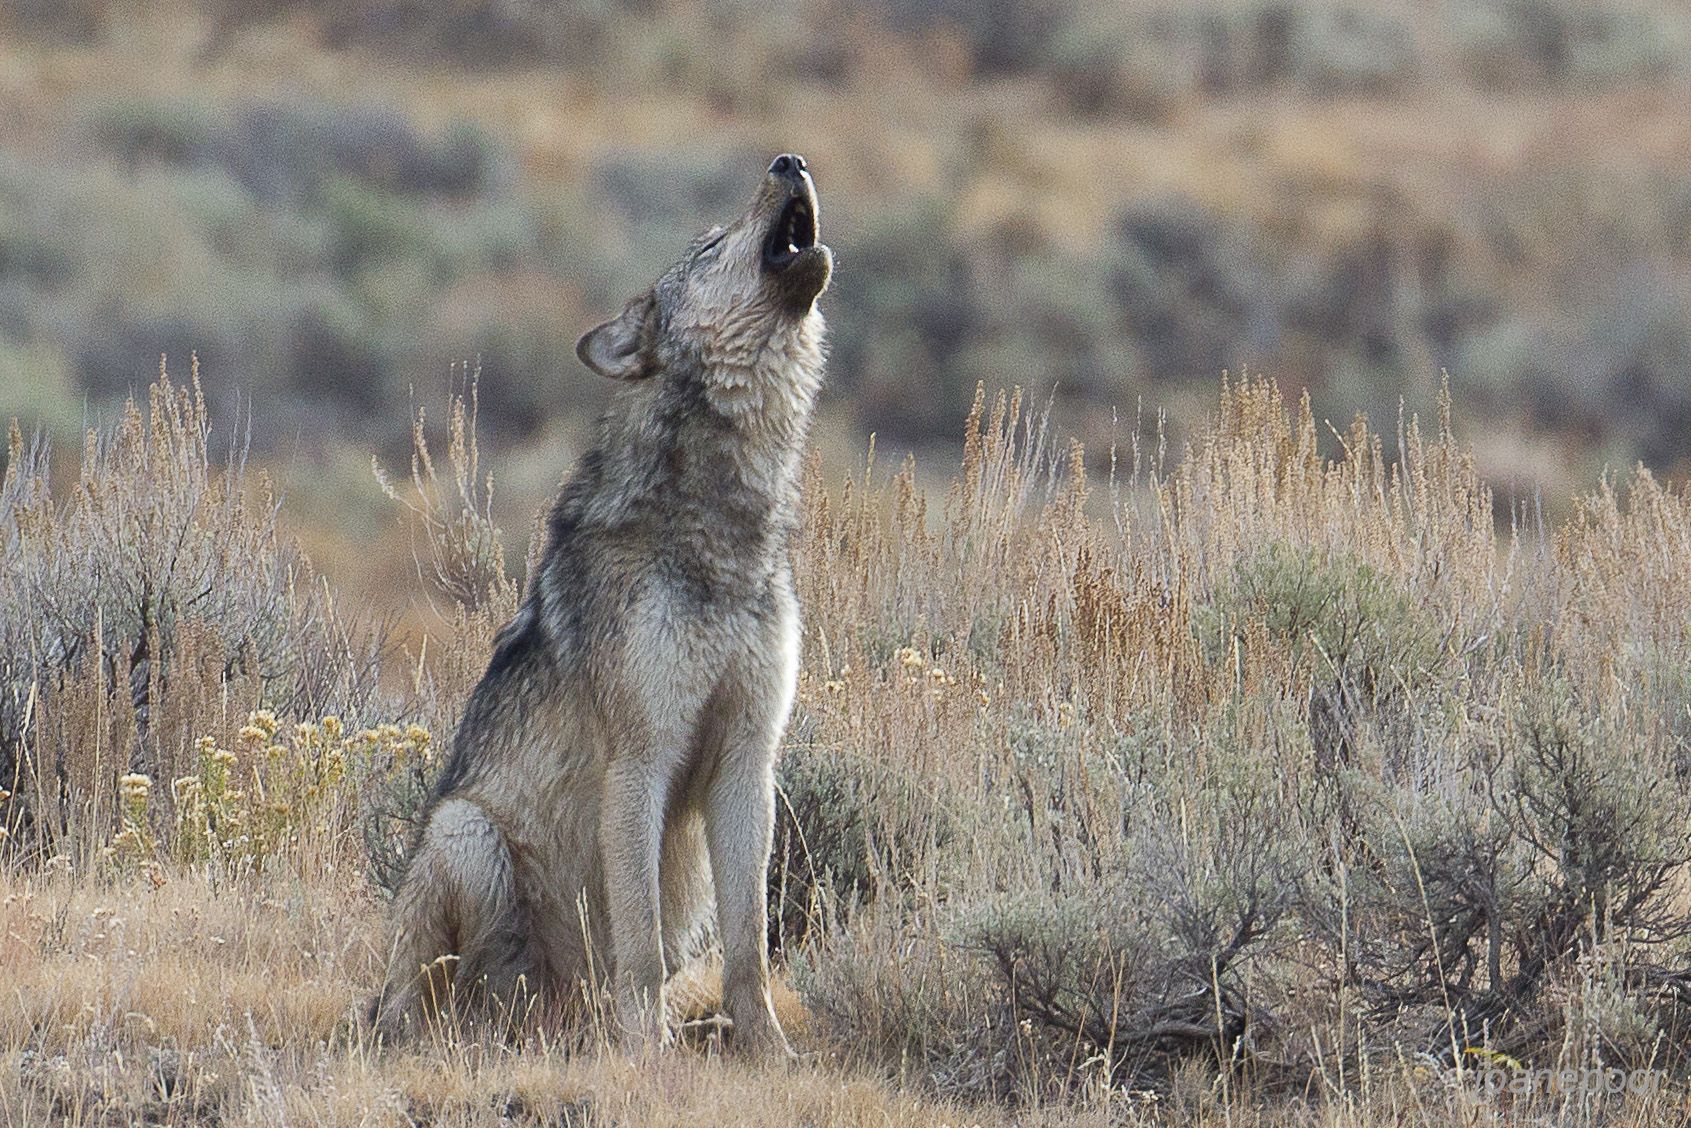 Adolescent gray wolf howling near Lamar River in Yellowstone